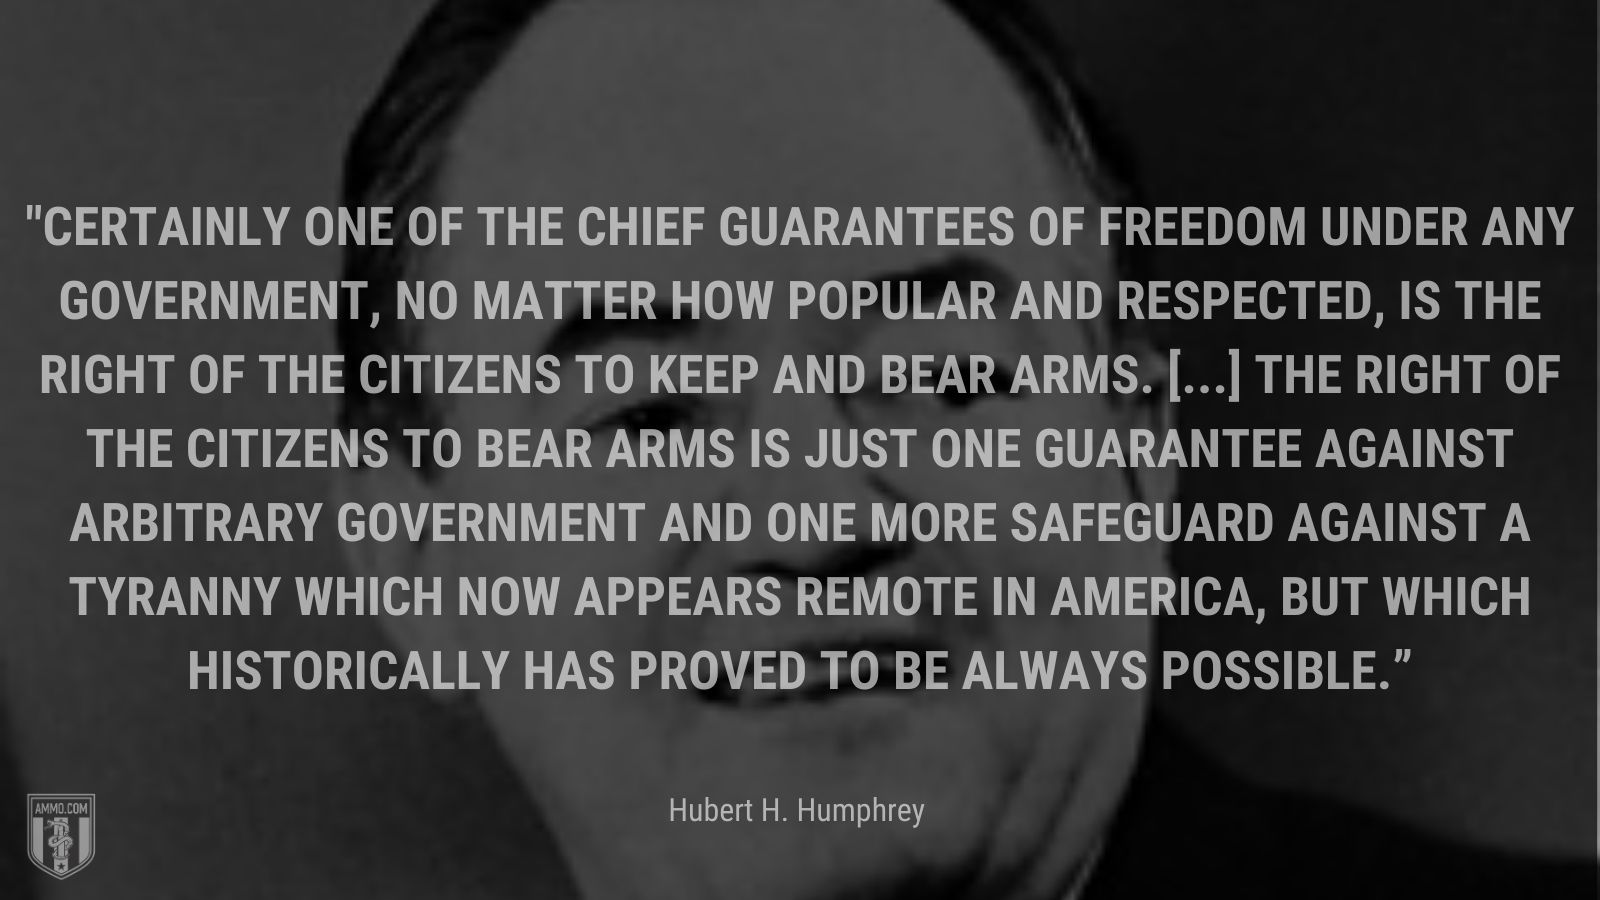 """""""Certainly one of the chief guarantees of freedom under any government, no matter how popular and respected, is the right of the citizens to keep and bear arms. [...] the right of the citizens to bear arms is just one guarantee against arbitrary government and one more safeguard against a tyranny which now appears remote in America, but which historically has proved to be always possible."""" - Rep. Hubert H. Humphrey"""